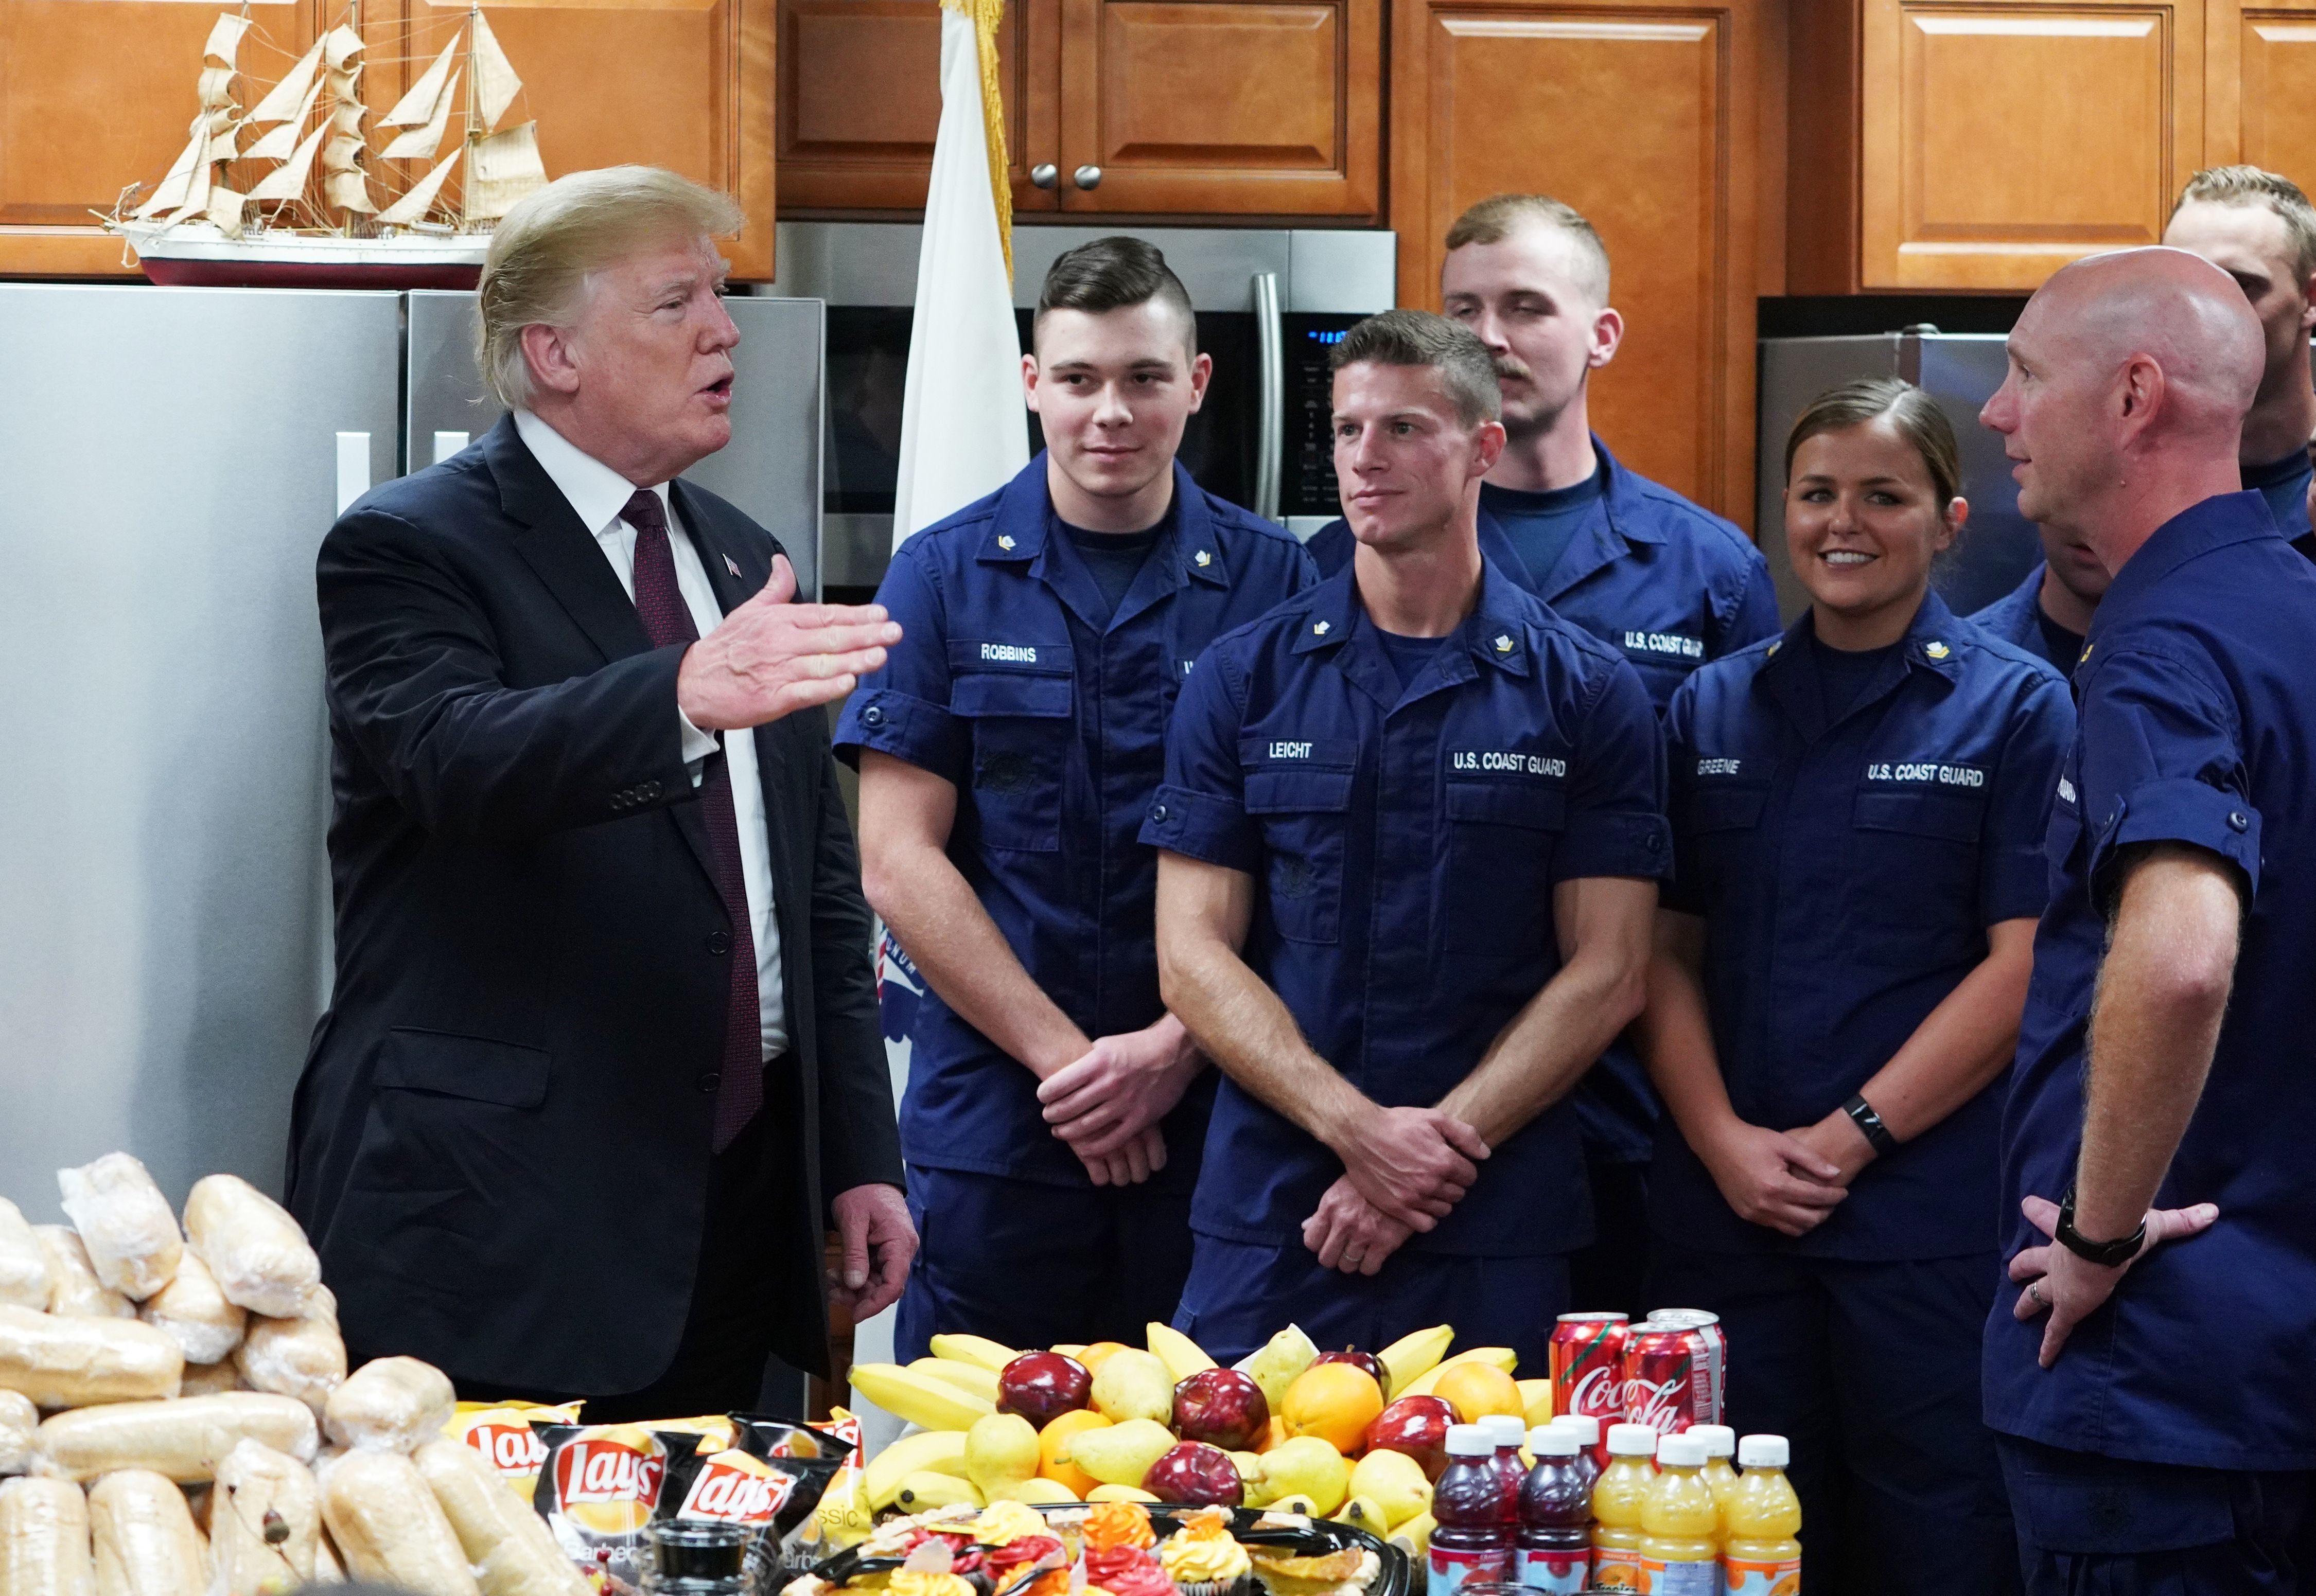 US President Donald Trump visits with personnel at US Coast Guard Station Lake Worth Inlet in Riviera Beach, Florida, on Thanksgiving Day, November 22, 2018. (Photo by MANDEL NGAN / AFP)        (Photo credit should read MANDEL NGAN/AFP/Getty Images)